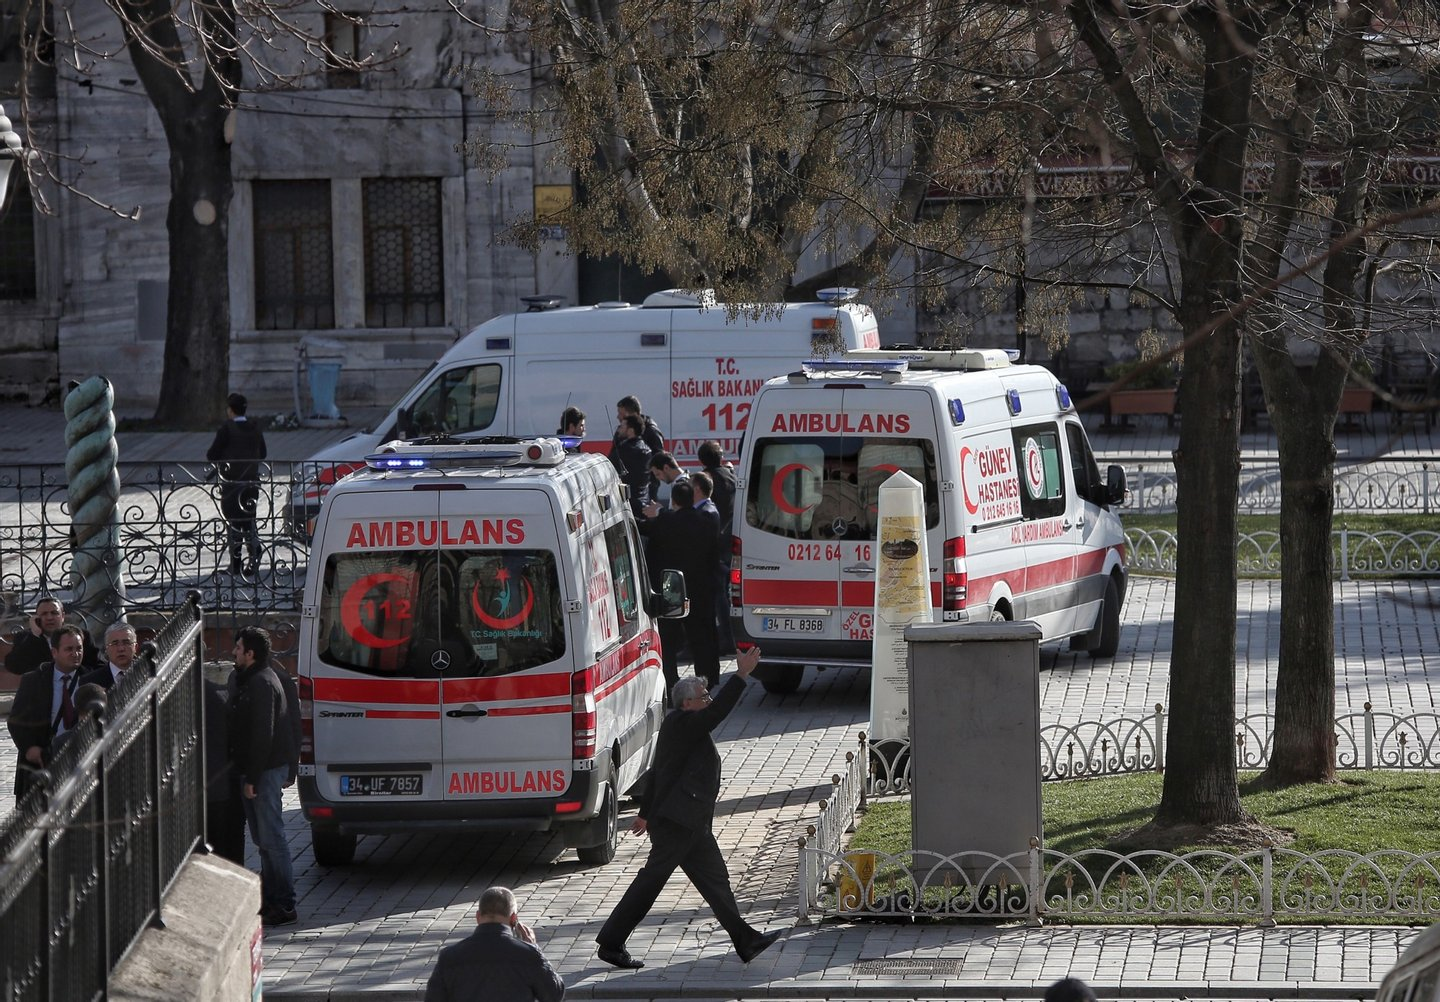 ISTANBUL, TURKEY -  JANUARY 12: Ambulances and police were despatched to the blast site after an explosion in the central Istanbul Sultanahmet district on January 12, 2016 in Istanbul, Turkey. At least 10 people have been killed and 15 wounded in a suicide bombing near tourists in the central Istanbul historic Sultanahmet district, which is home to world-famous monuments including the Blue Mosque and the Hagia Sophia. Turkish President Erdogan has stated that the suicide bomber was of Syrian origin. (Photo by Can Erok/Getty Images)